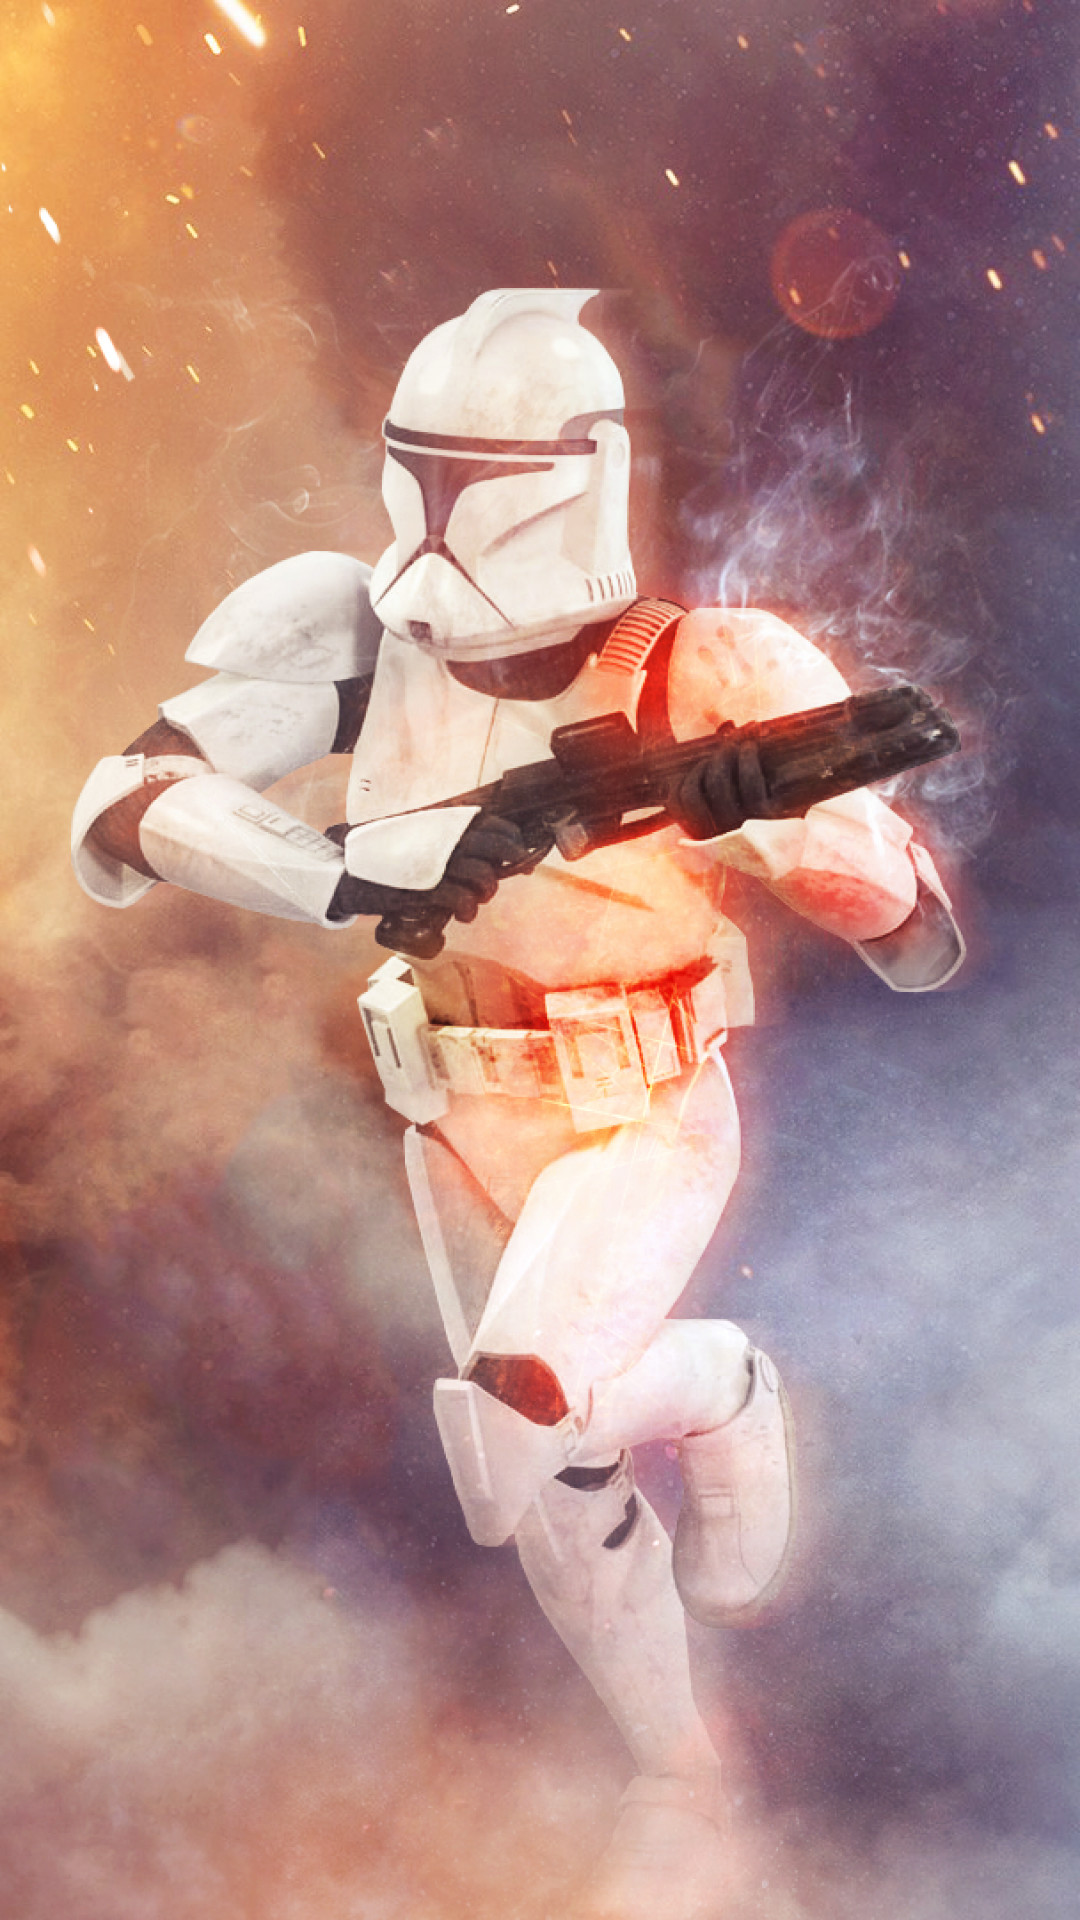 Star Wars Clone Trooper Wallpaper 61 Pictures